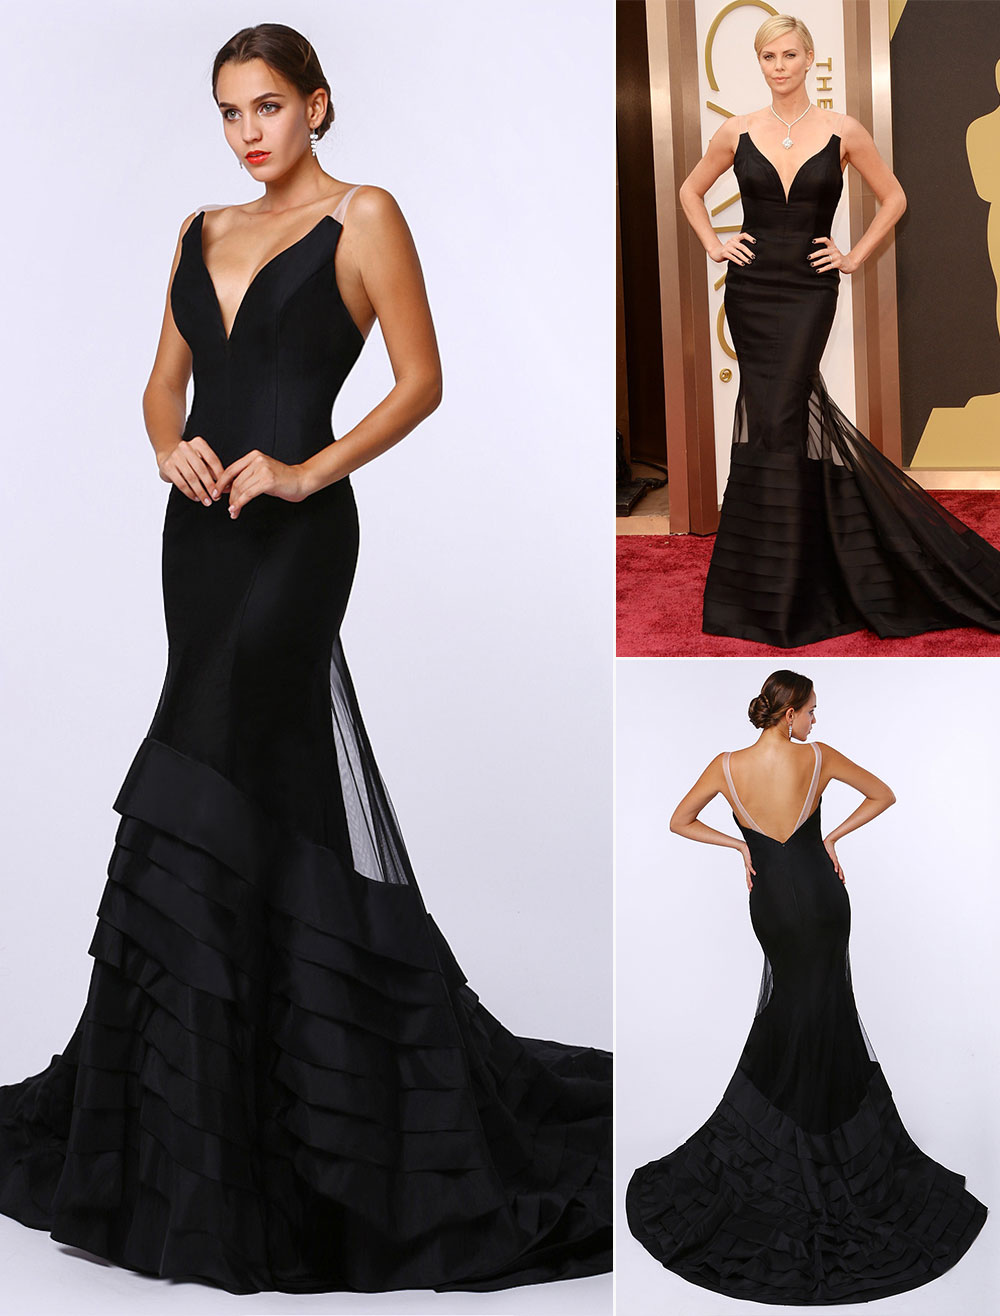 Sexy Black Deep V Mermaid Evening Dress Inspired by Charlize Theronk at Oscar